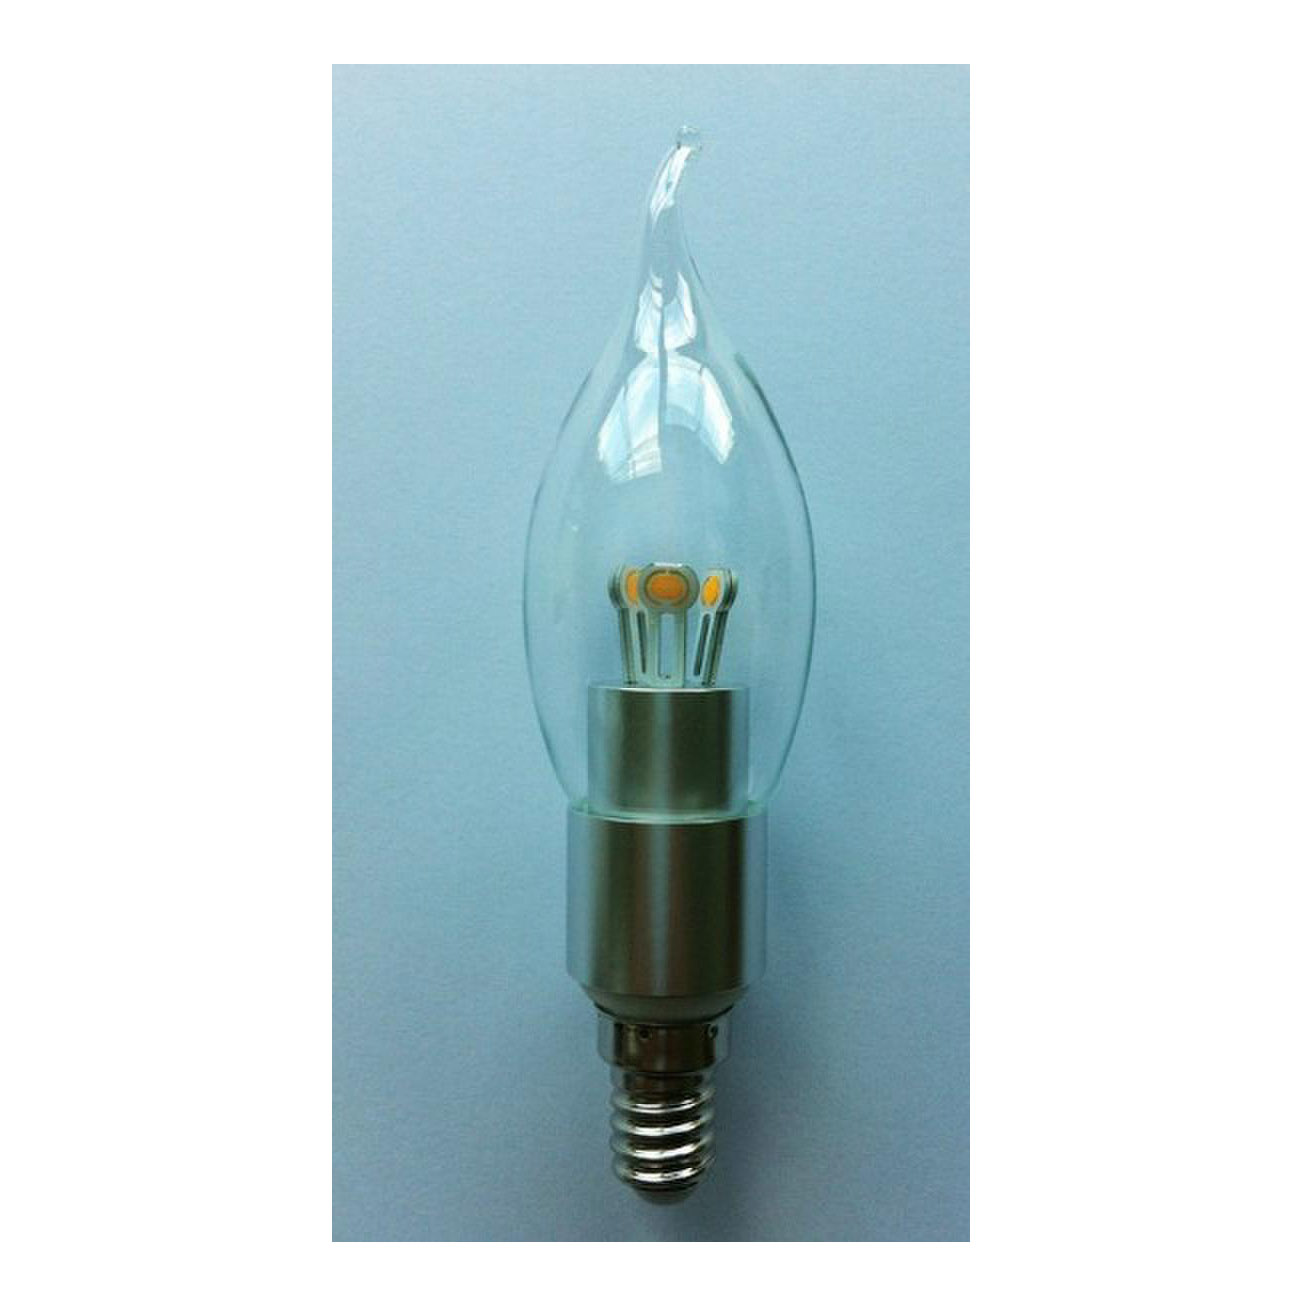 LED Bent-tip Bulb High Quality Silver Aluminum 3W Ra85 E14 180lm  85-265V COB LED Chip Clear/Frosted/Milky Glass Cover